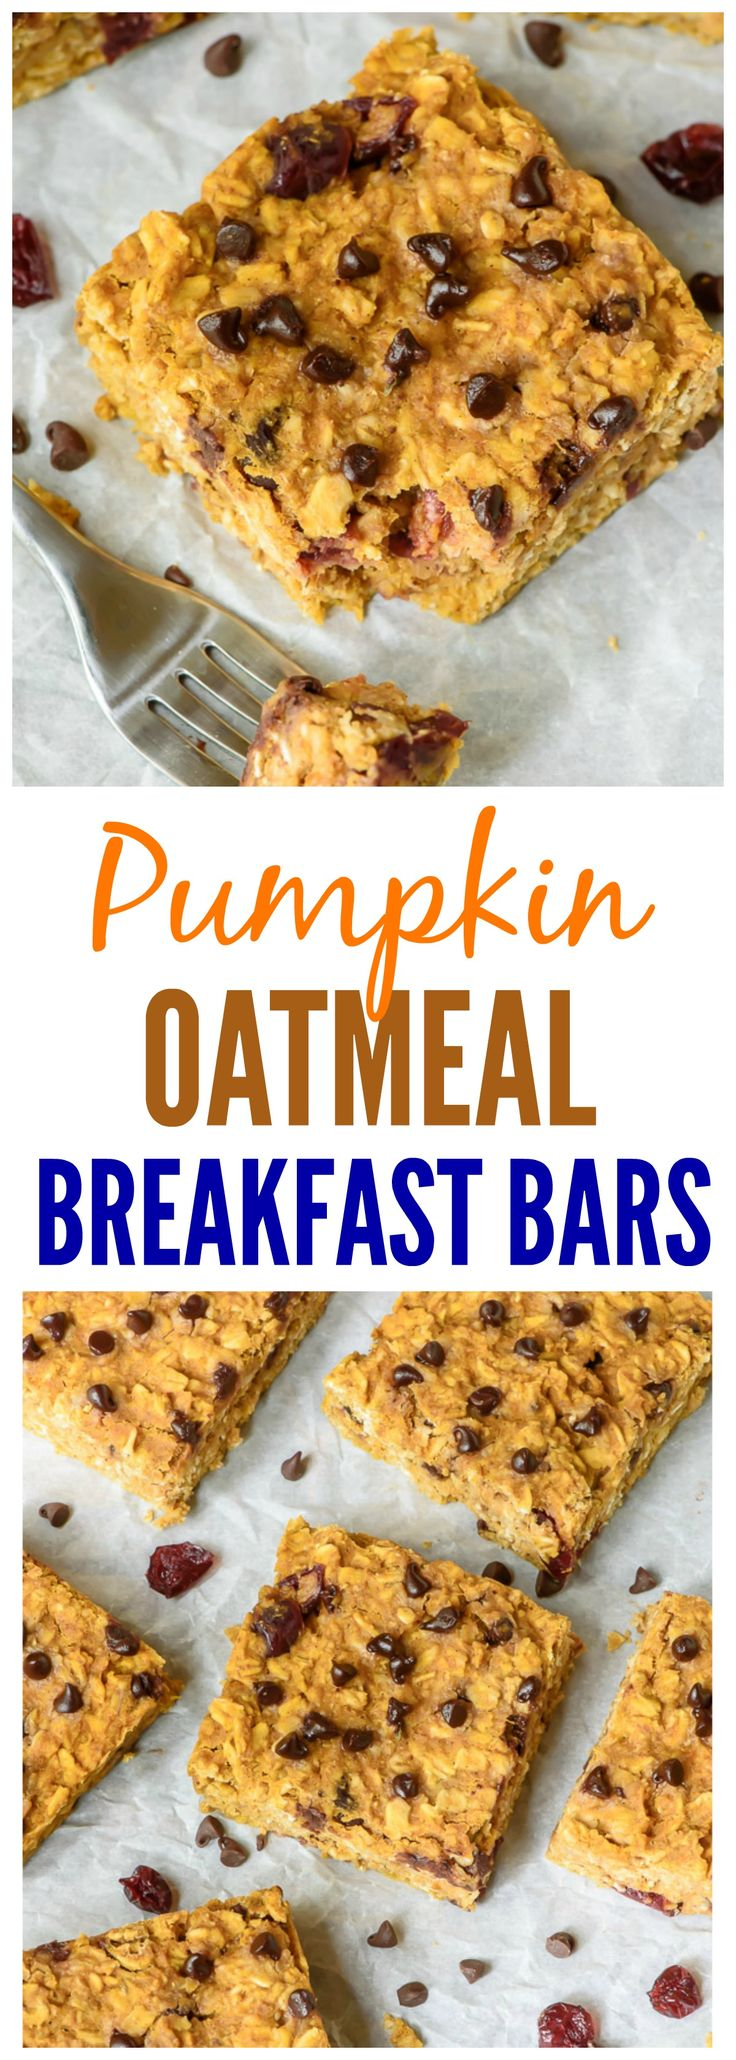 Pumpkin Peanut Butter Oatmeal Breakfast Bars. Healthy, filling, and absolutely delicious! Perfect for on-the-go breakfasts and snacks. We added chocolate chips and dried cranberries. {Gluten Free, Dairy Free, Vegan!} Recipe at wellplated.com @wellplated